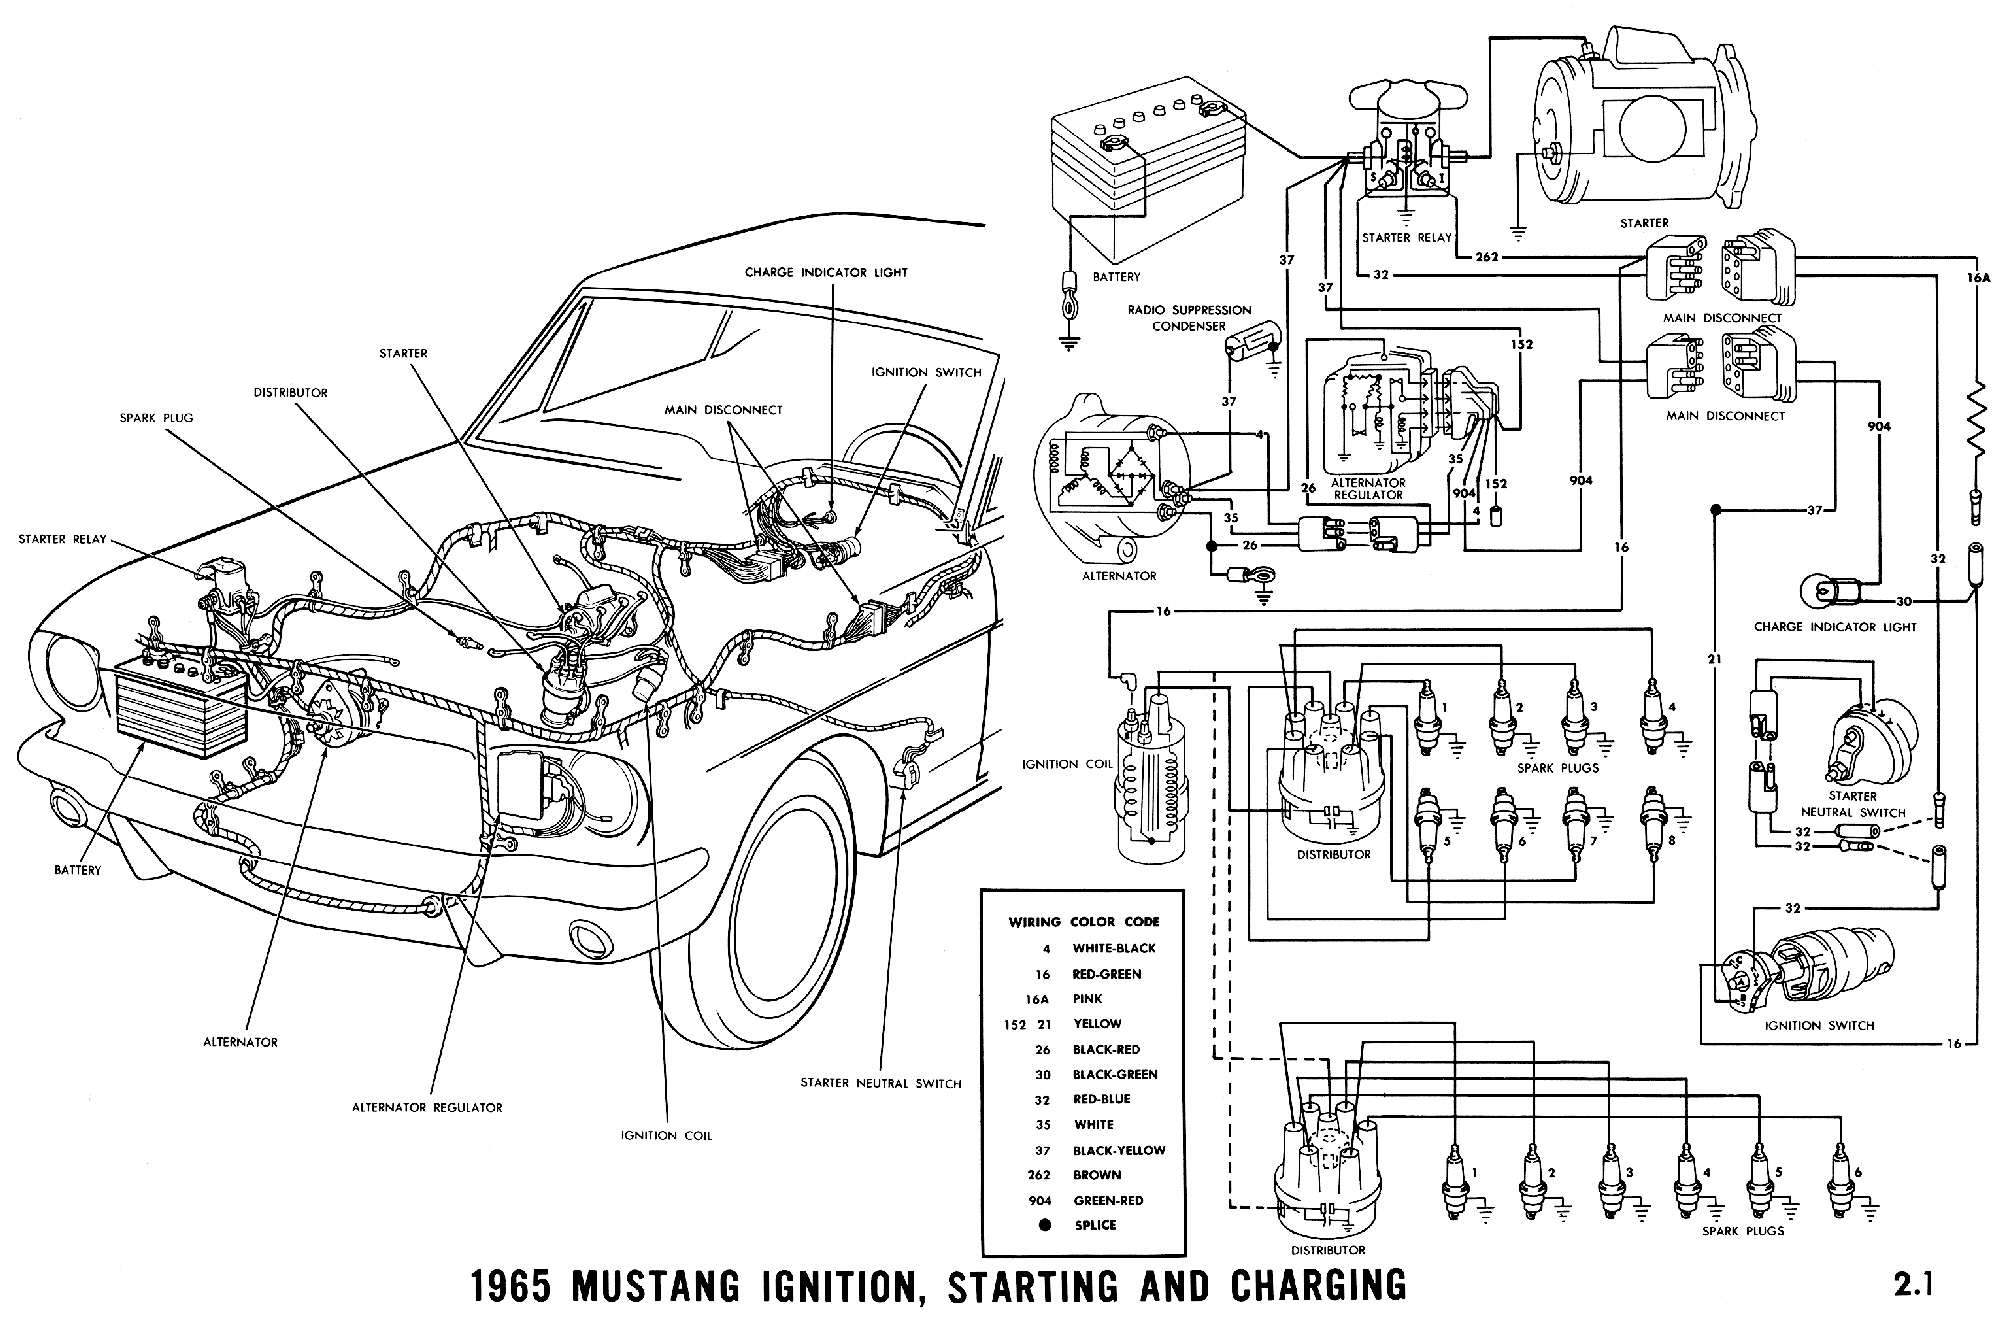 Mustang Ignition Wiring